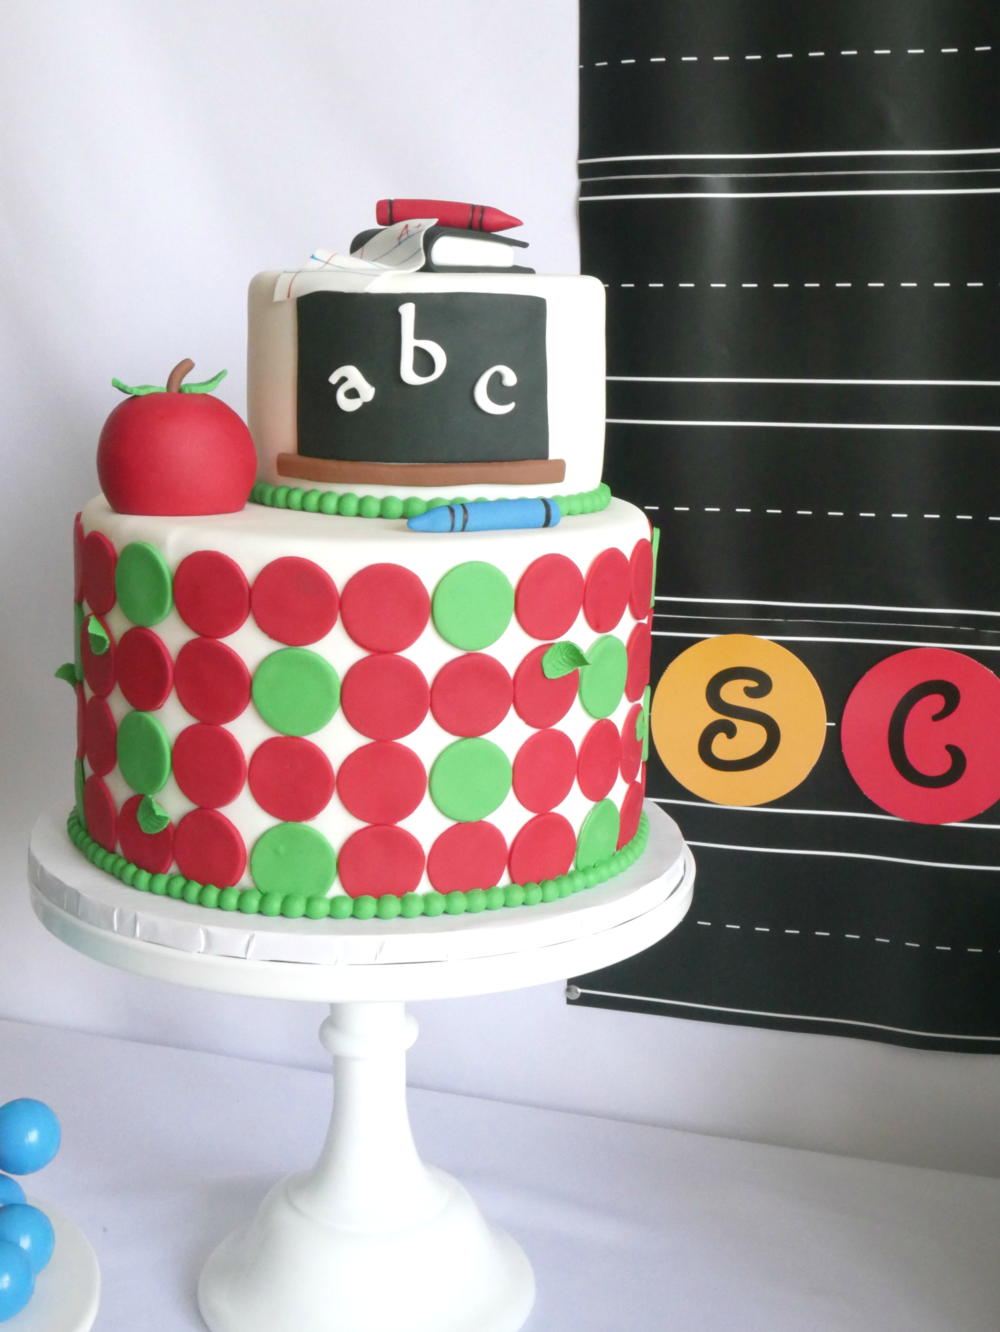 Back to School cake with two tiers, Polka dots, apples, school supply cake made with fondant and modeling chocolate in primary colors. Perfect for Back To School party!